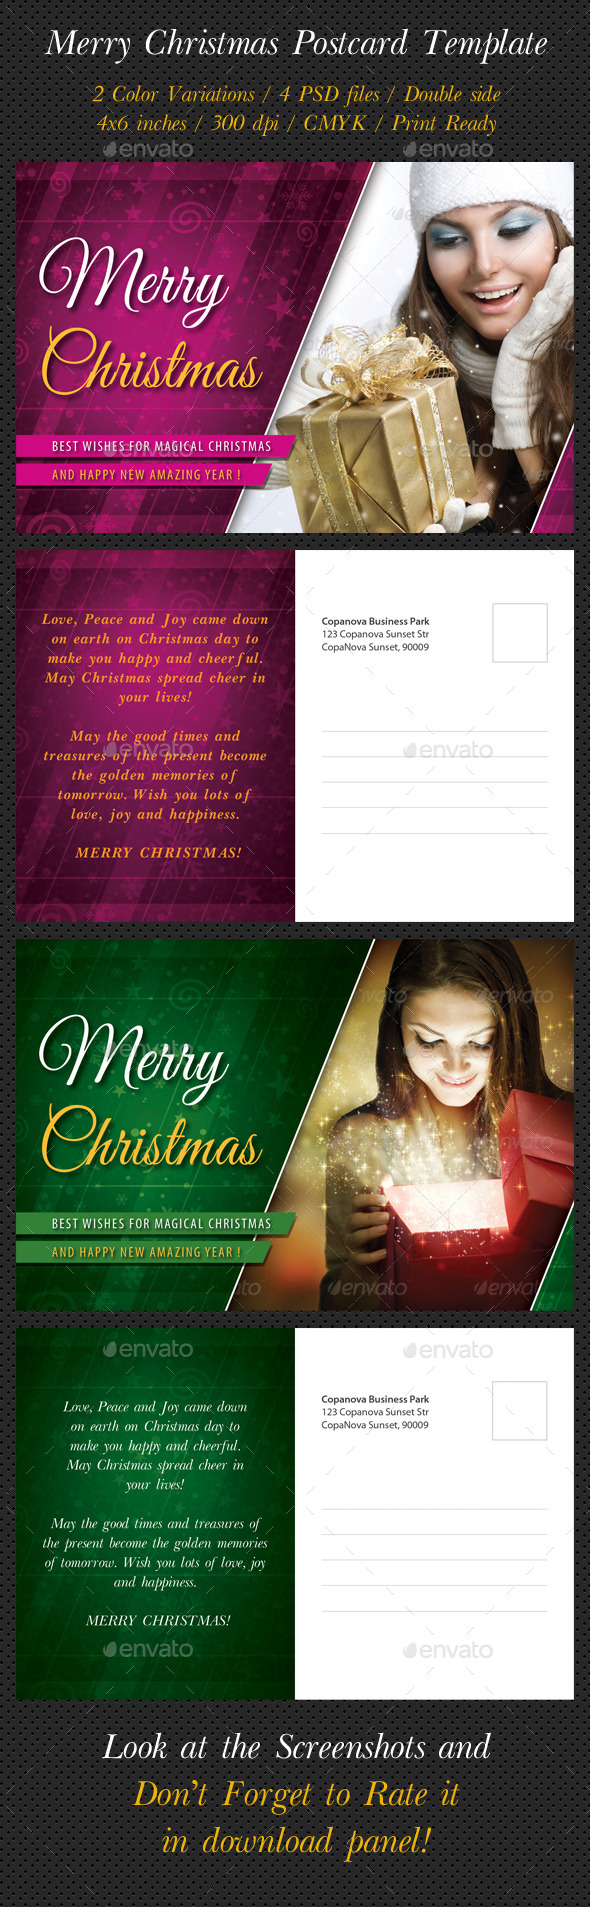 GraphicRiver Merry Christmas Postcard Template 8884198